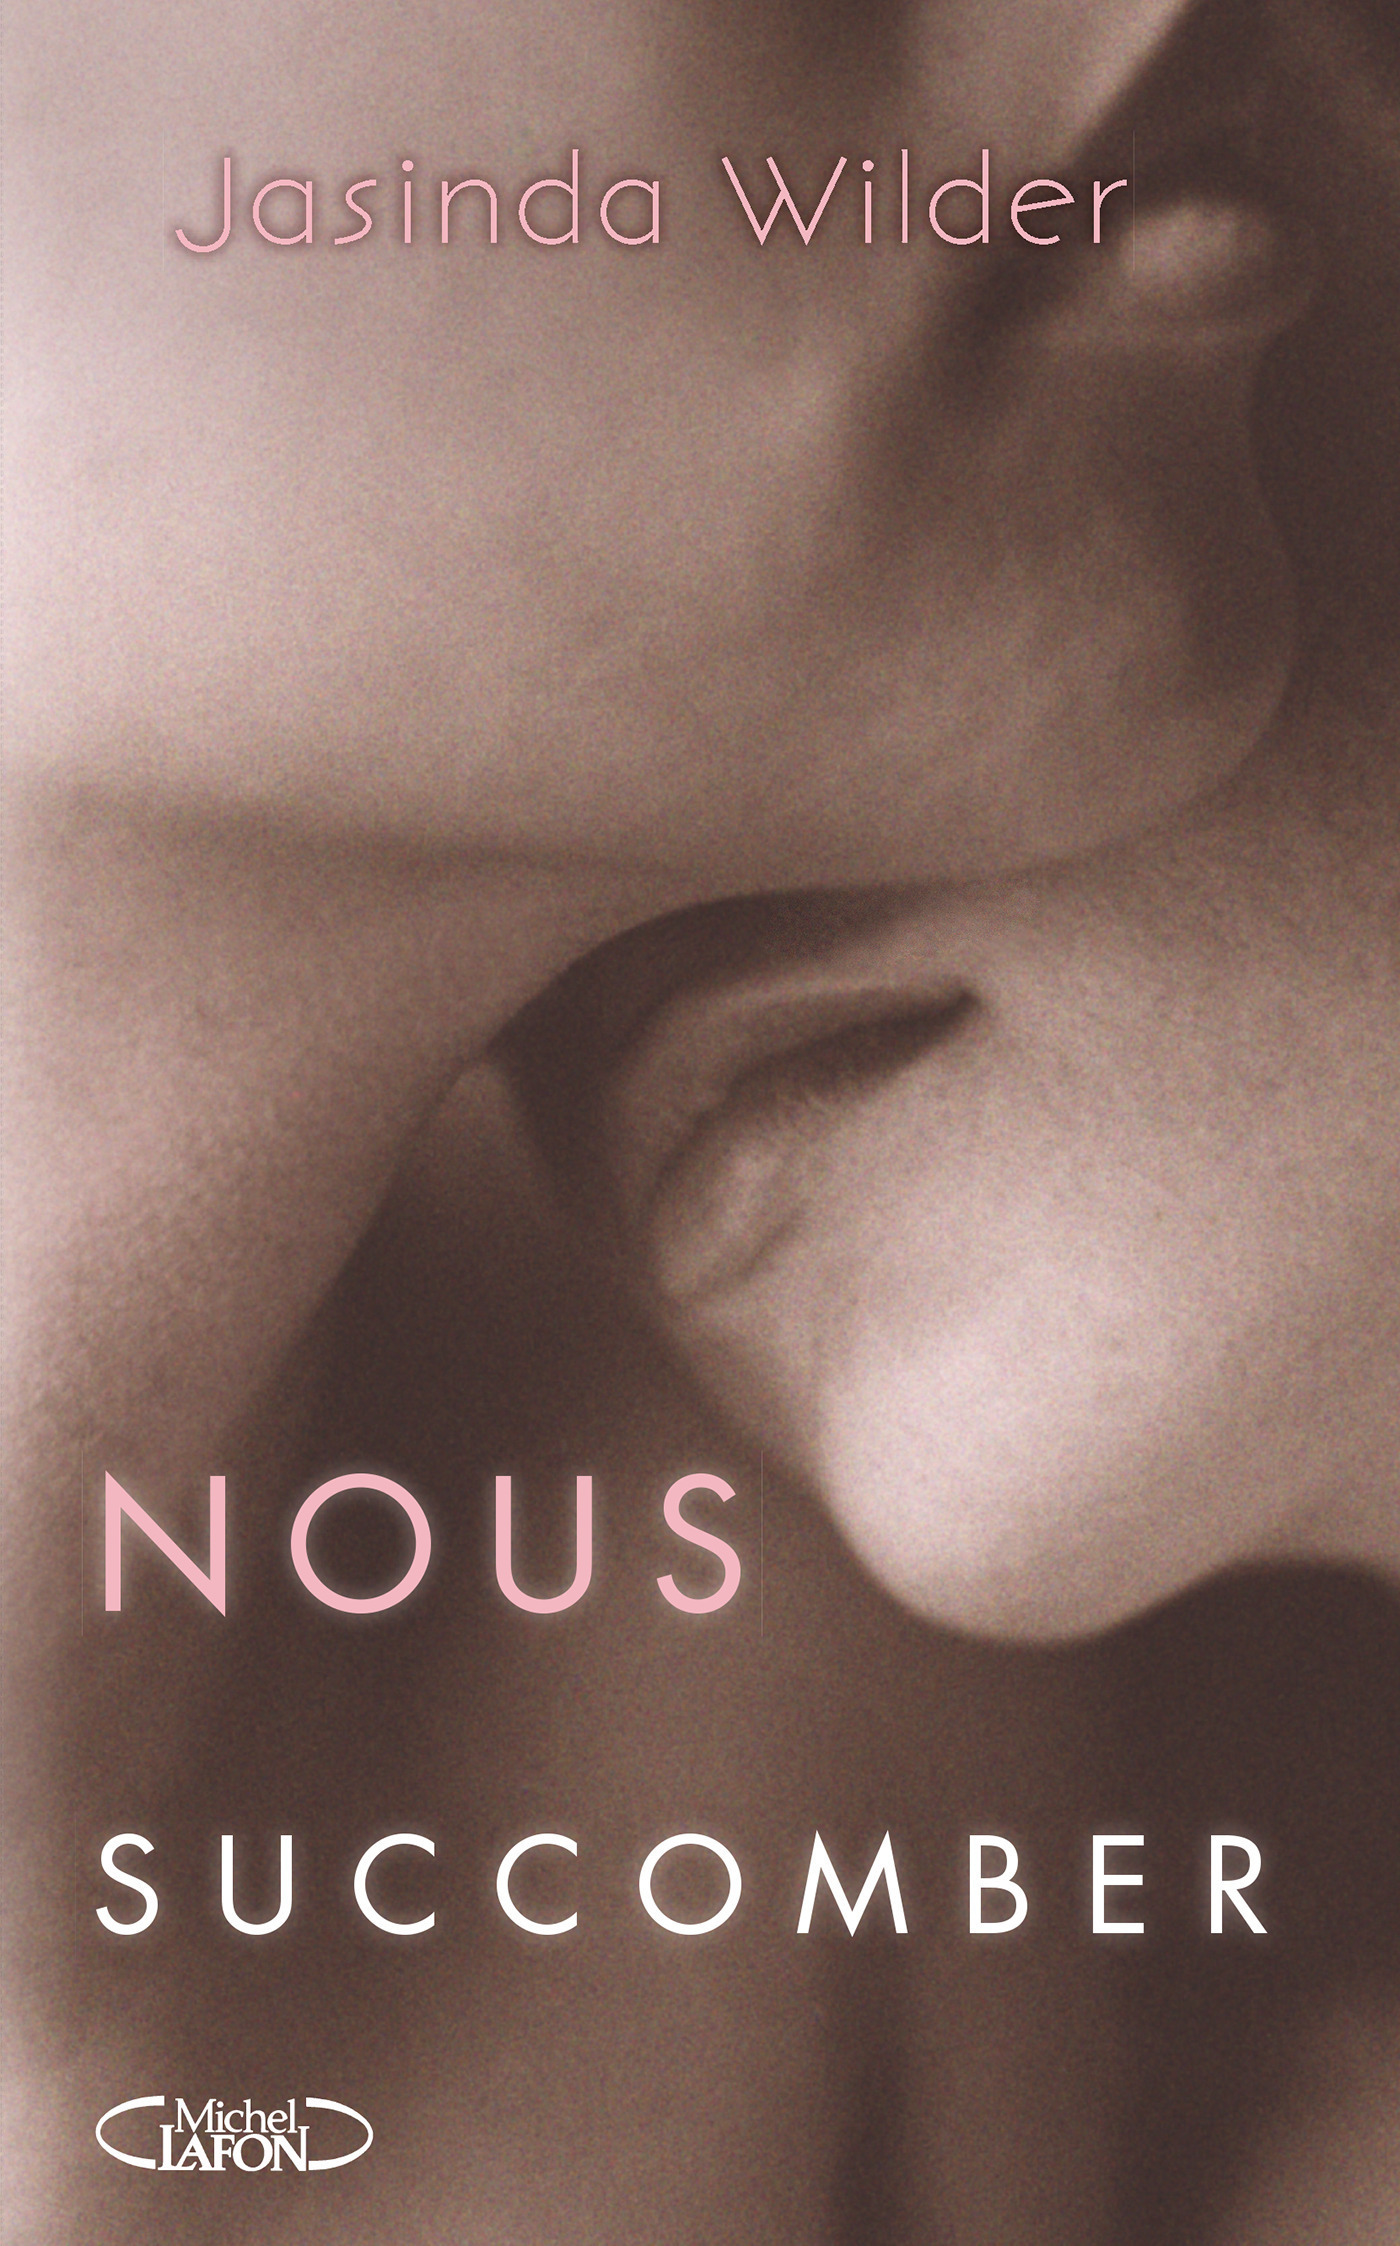 Nous succomber tome 2 (ebook)